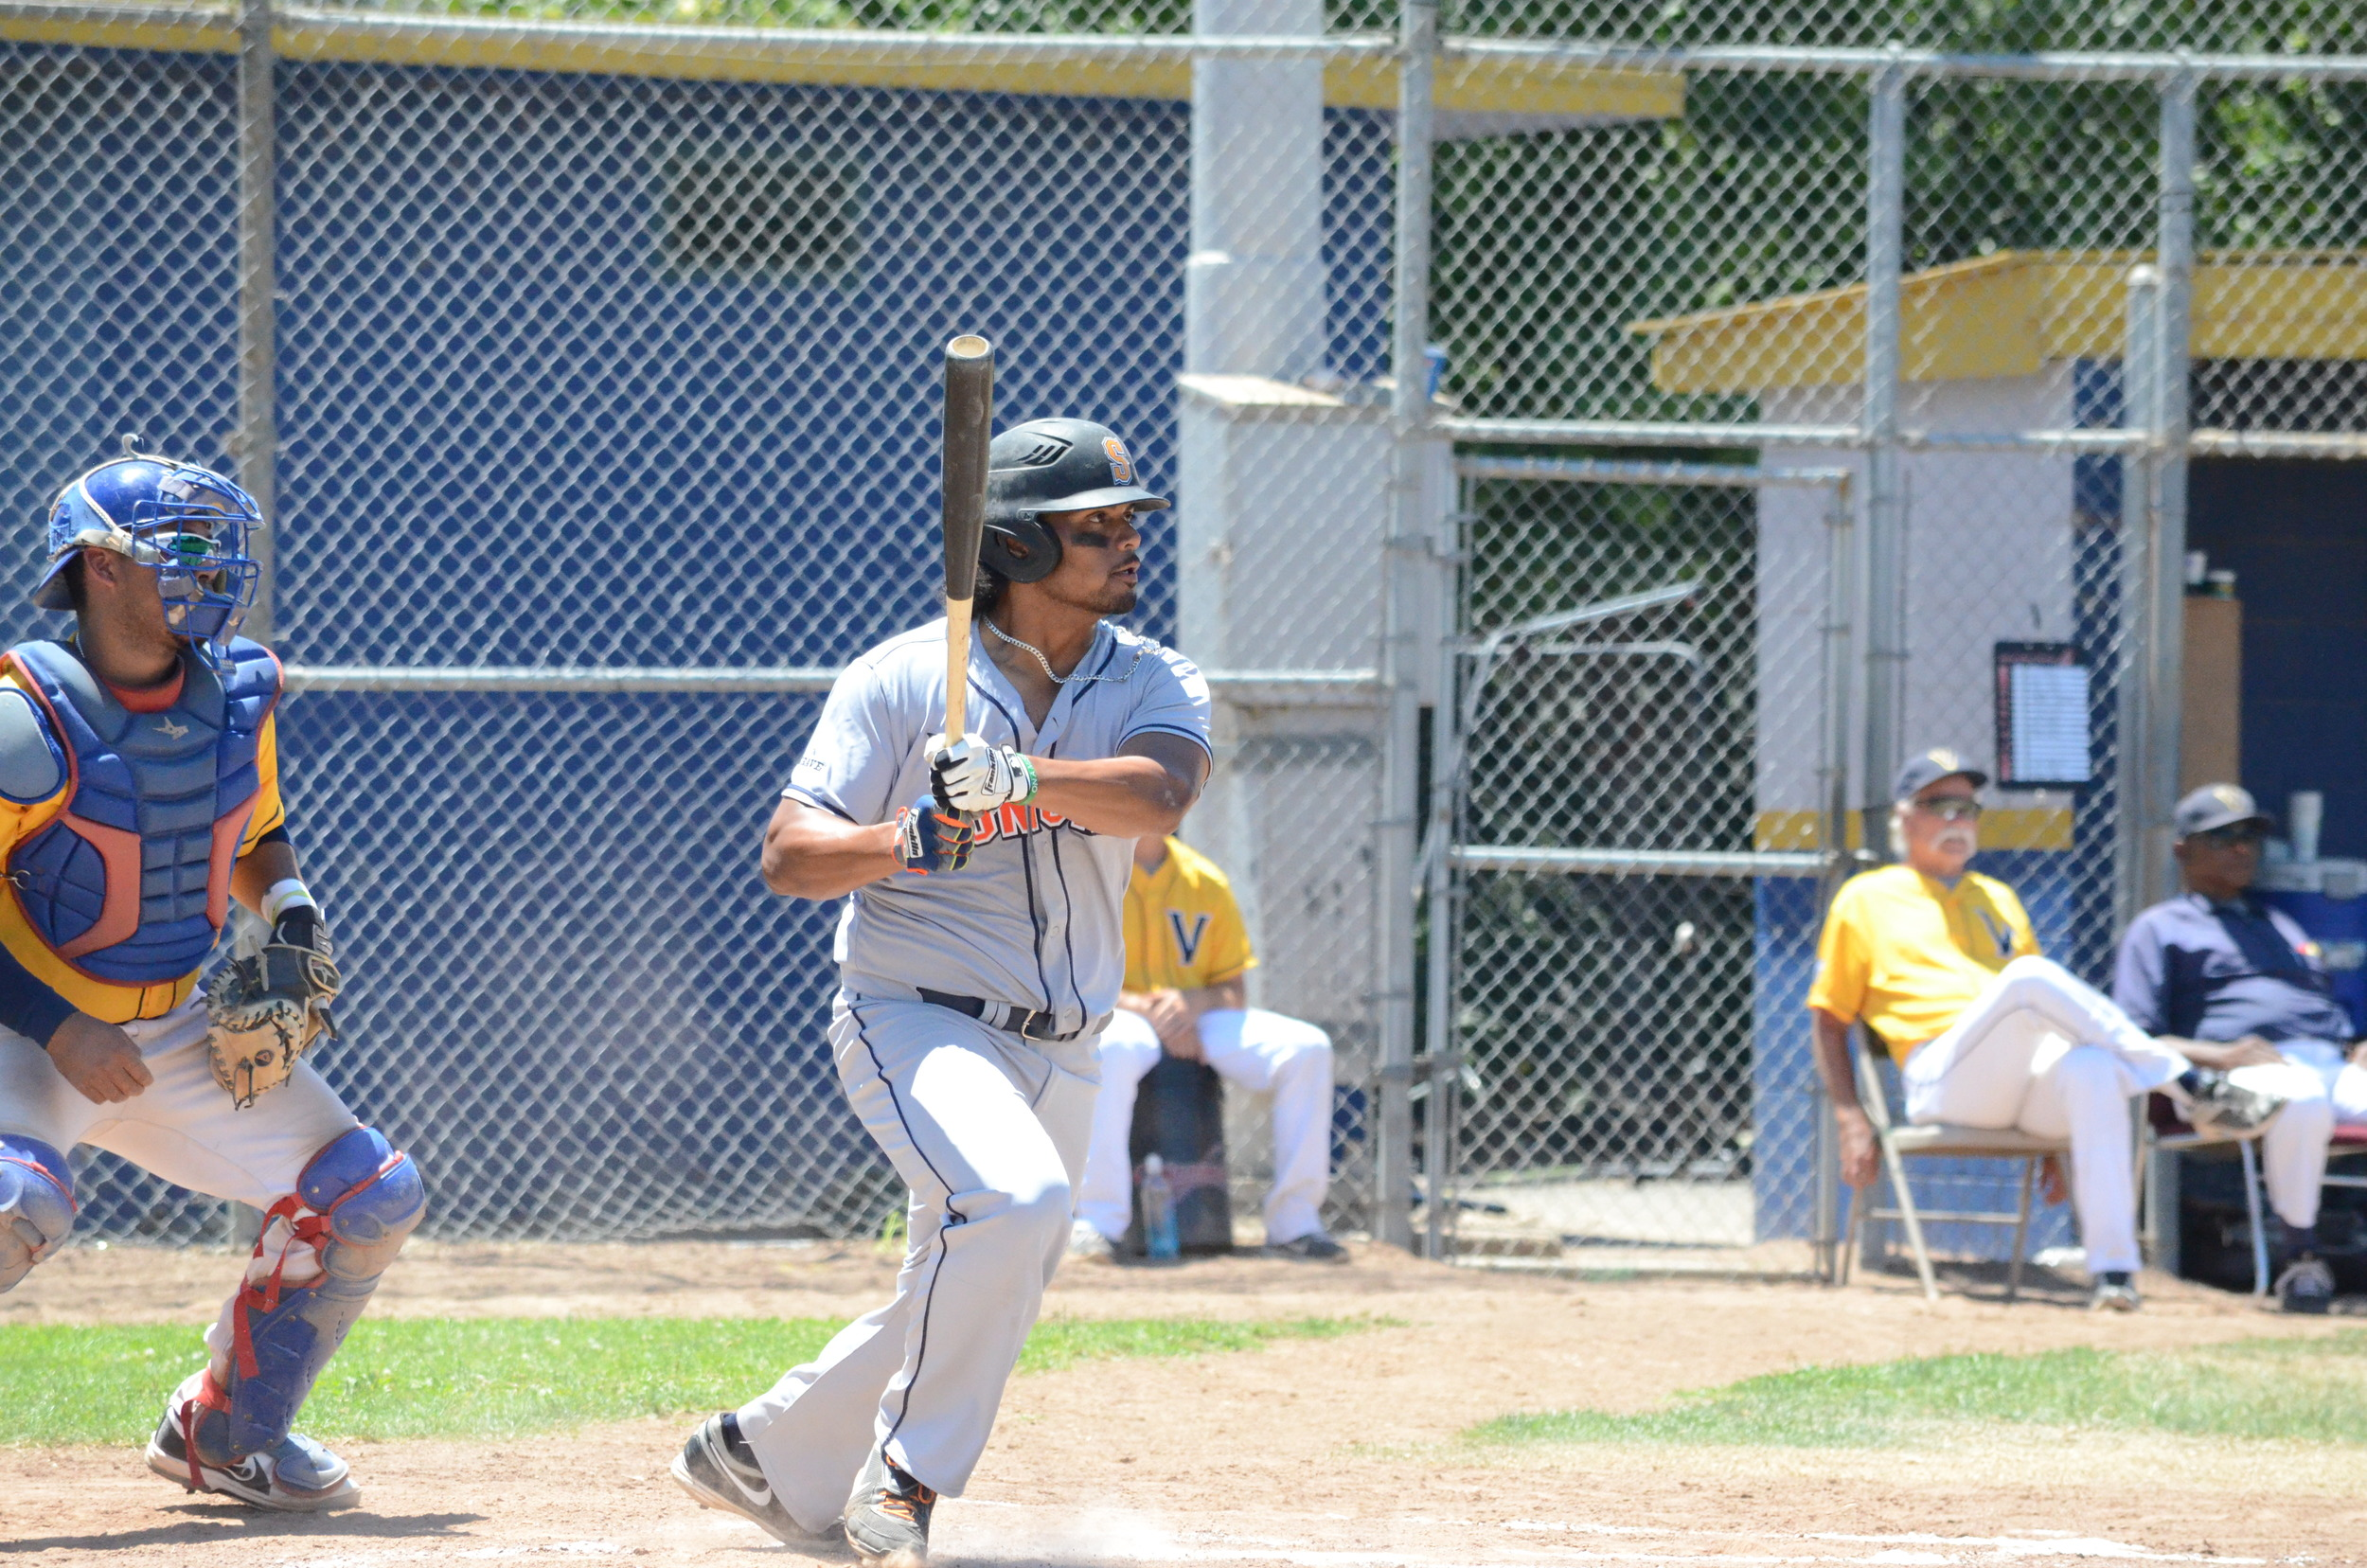 Daniel Baptista and the middle of the order fueled a 10-5 win over the Diamonds on Sunday afternoon. Baptista finished 3 for 6 with 3 driven in on the afternoon.   James Toy III/Sonoma Stompers